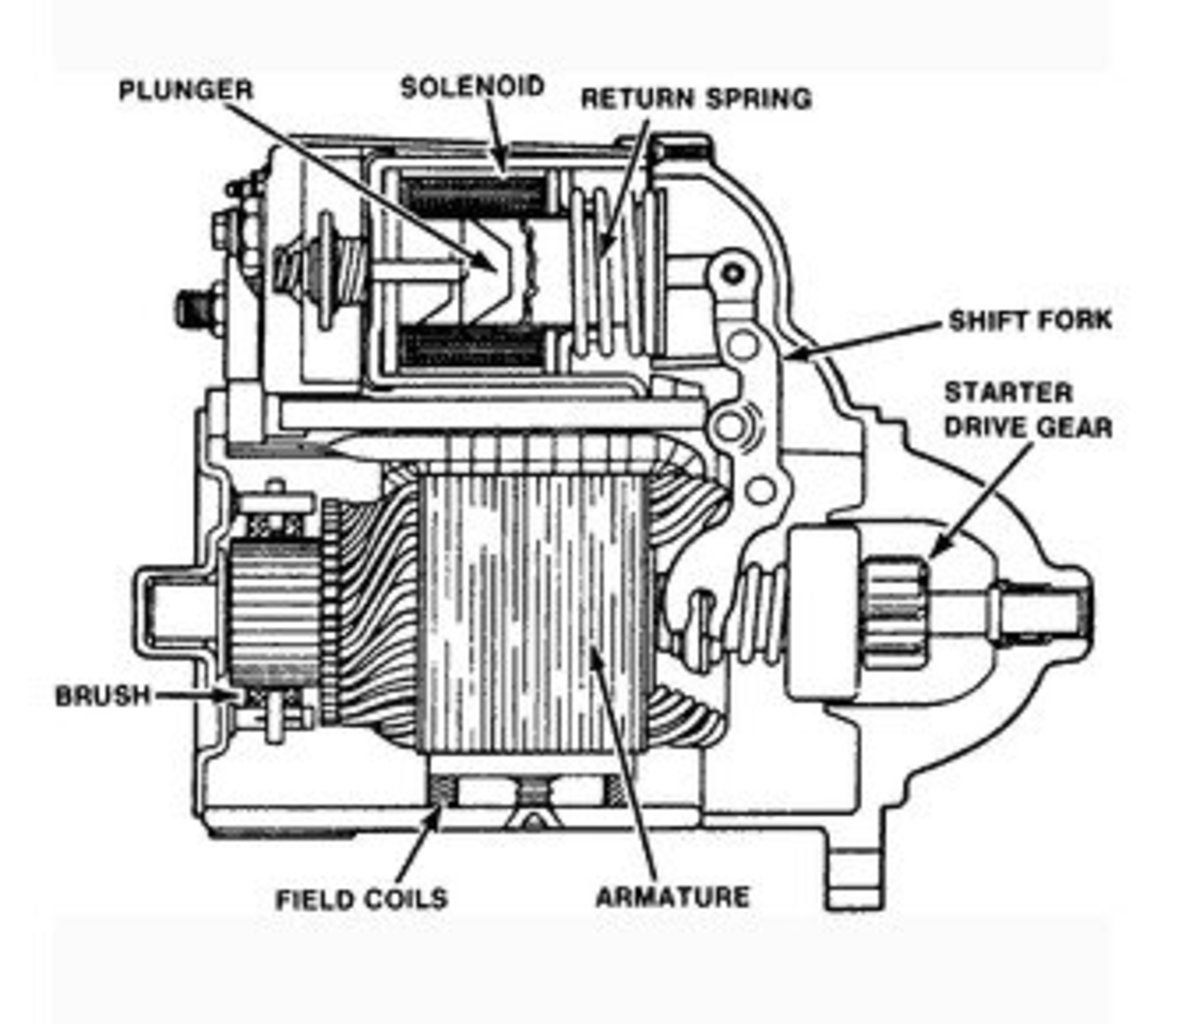 High voltage drop can render the starter motor in your vehicle inoperative.